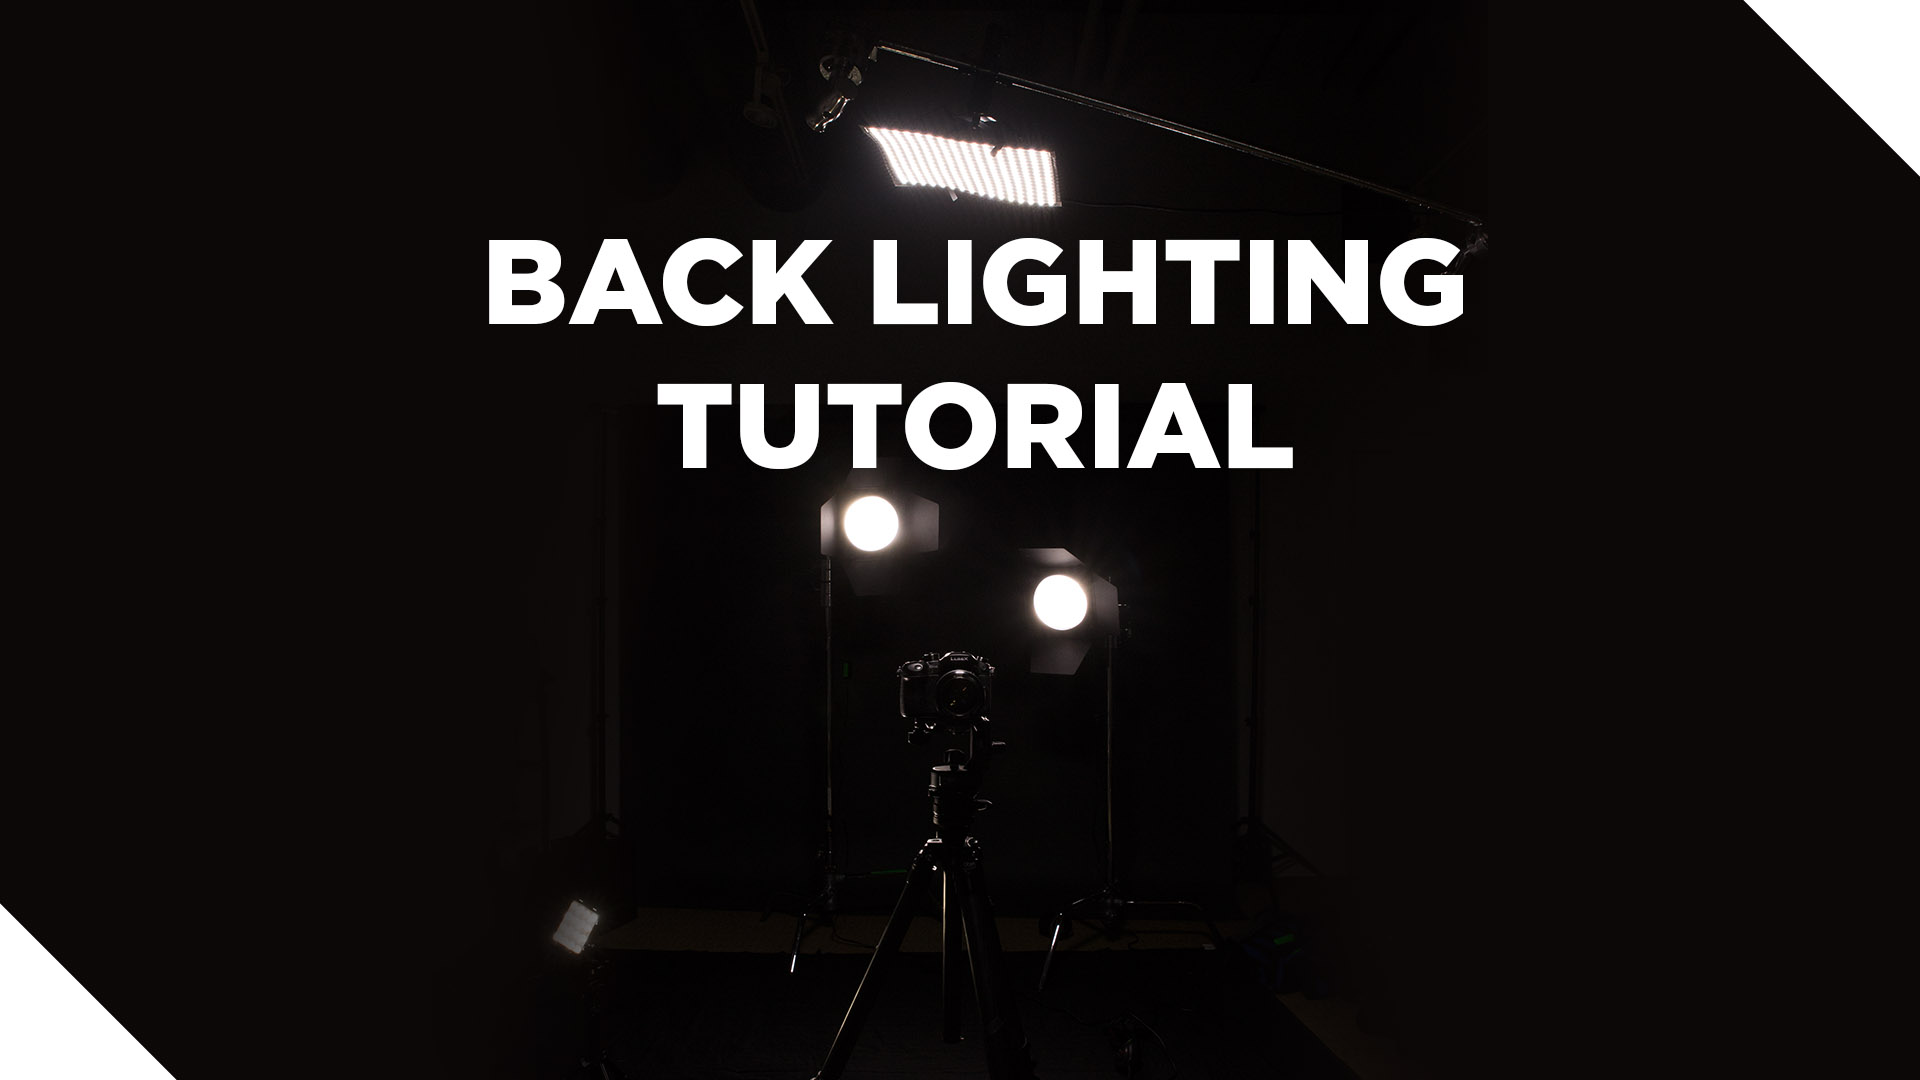 Lighting Tutorial: How to Create Dramatic Back Lighting